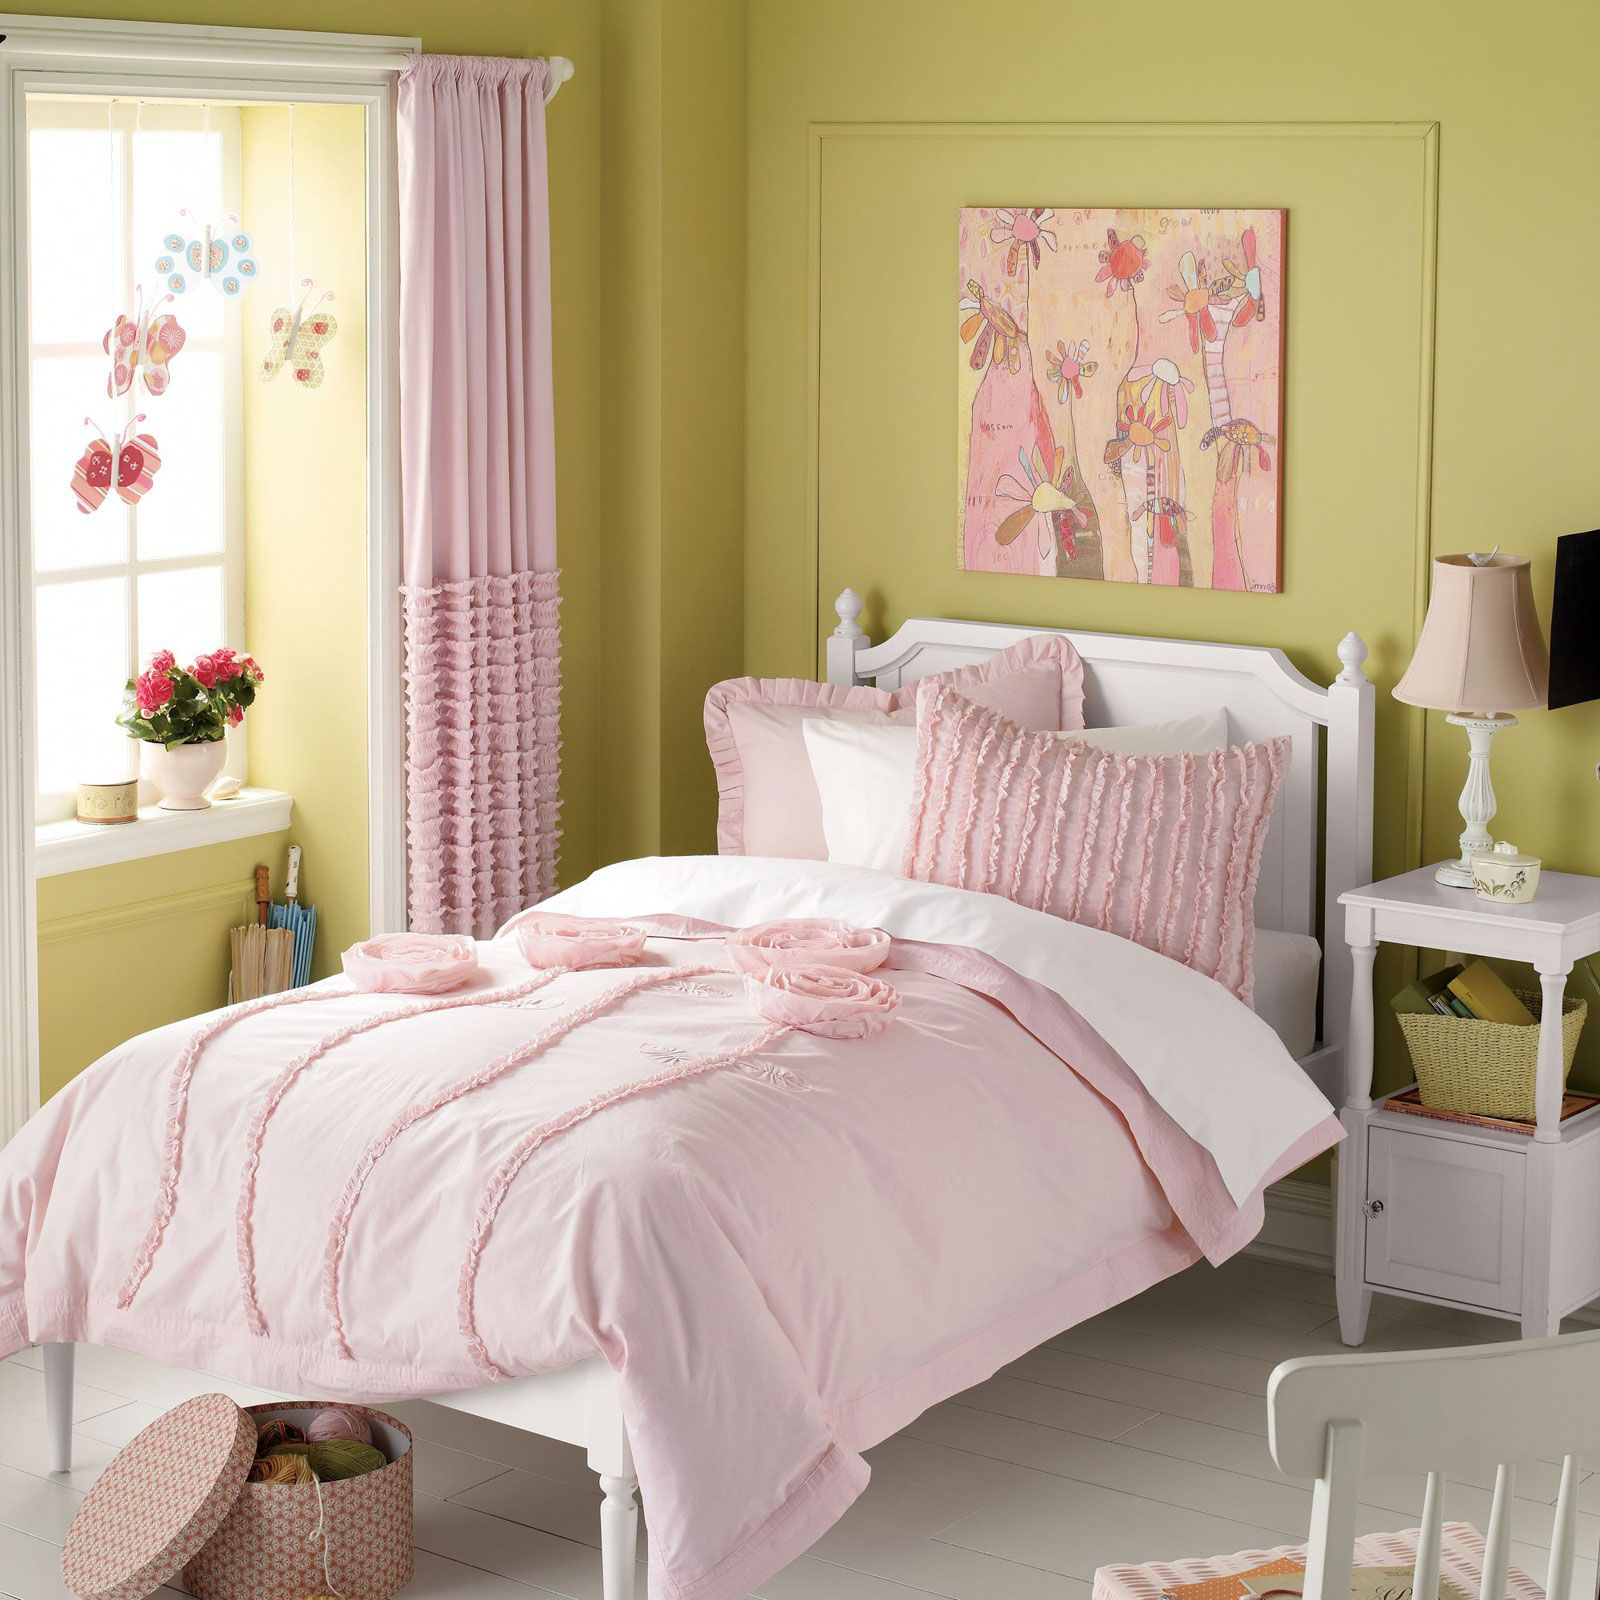 Bedroom:Minimalist Style Of Girl Room Paint Ideas Pink Bedding Of Single Bed White Nightstand Night Lamps White Single Bed Pink Curtain Pink Blanket White Flooring White Small Chairs Pink Flowers Minimalist Girl Bedroom Picture Ideas